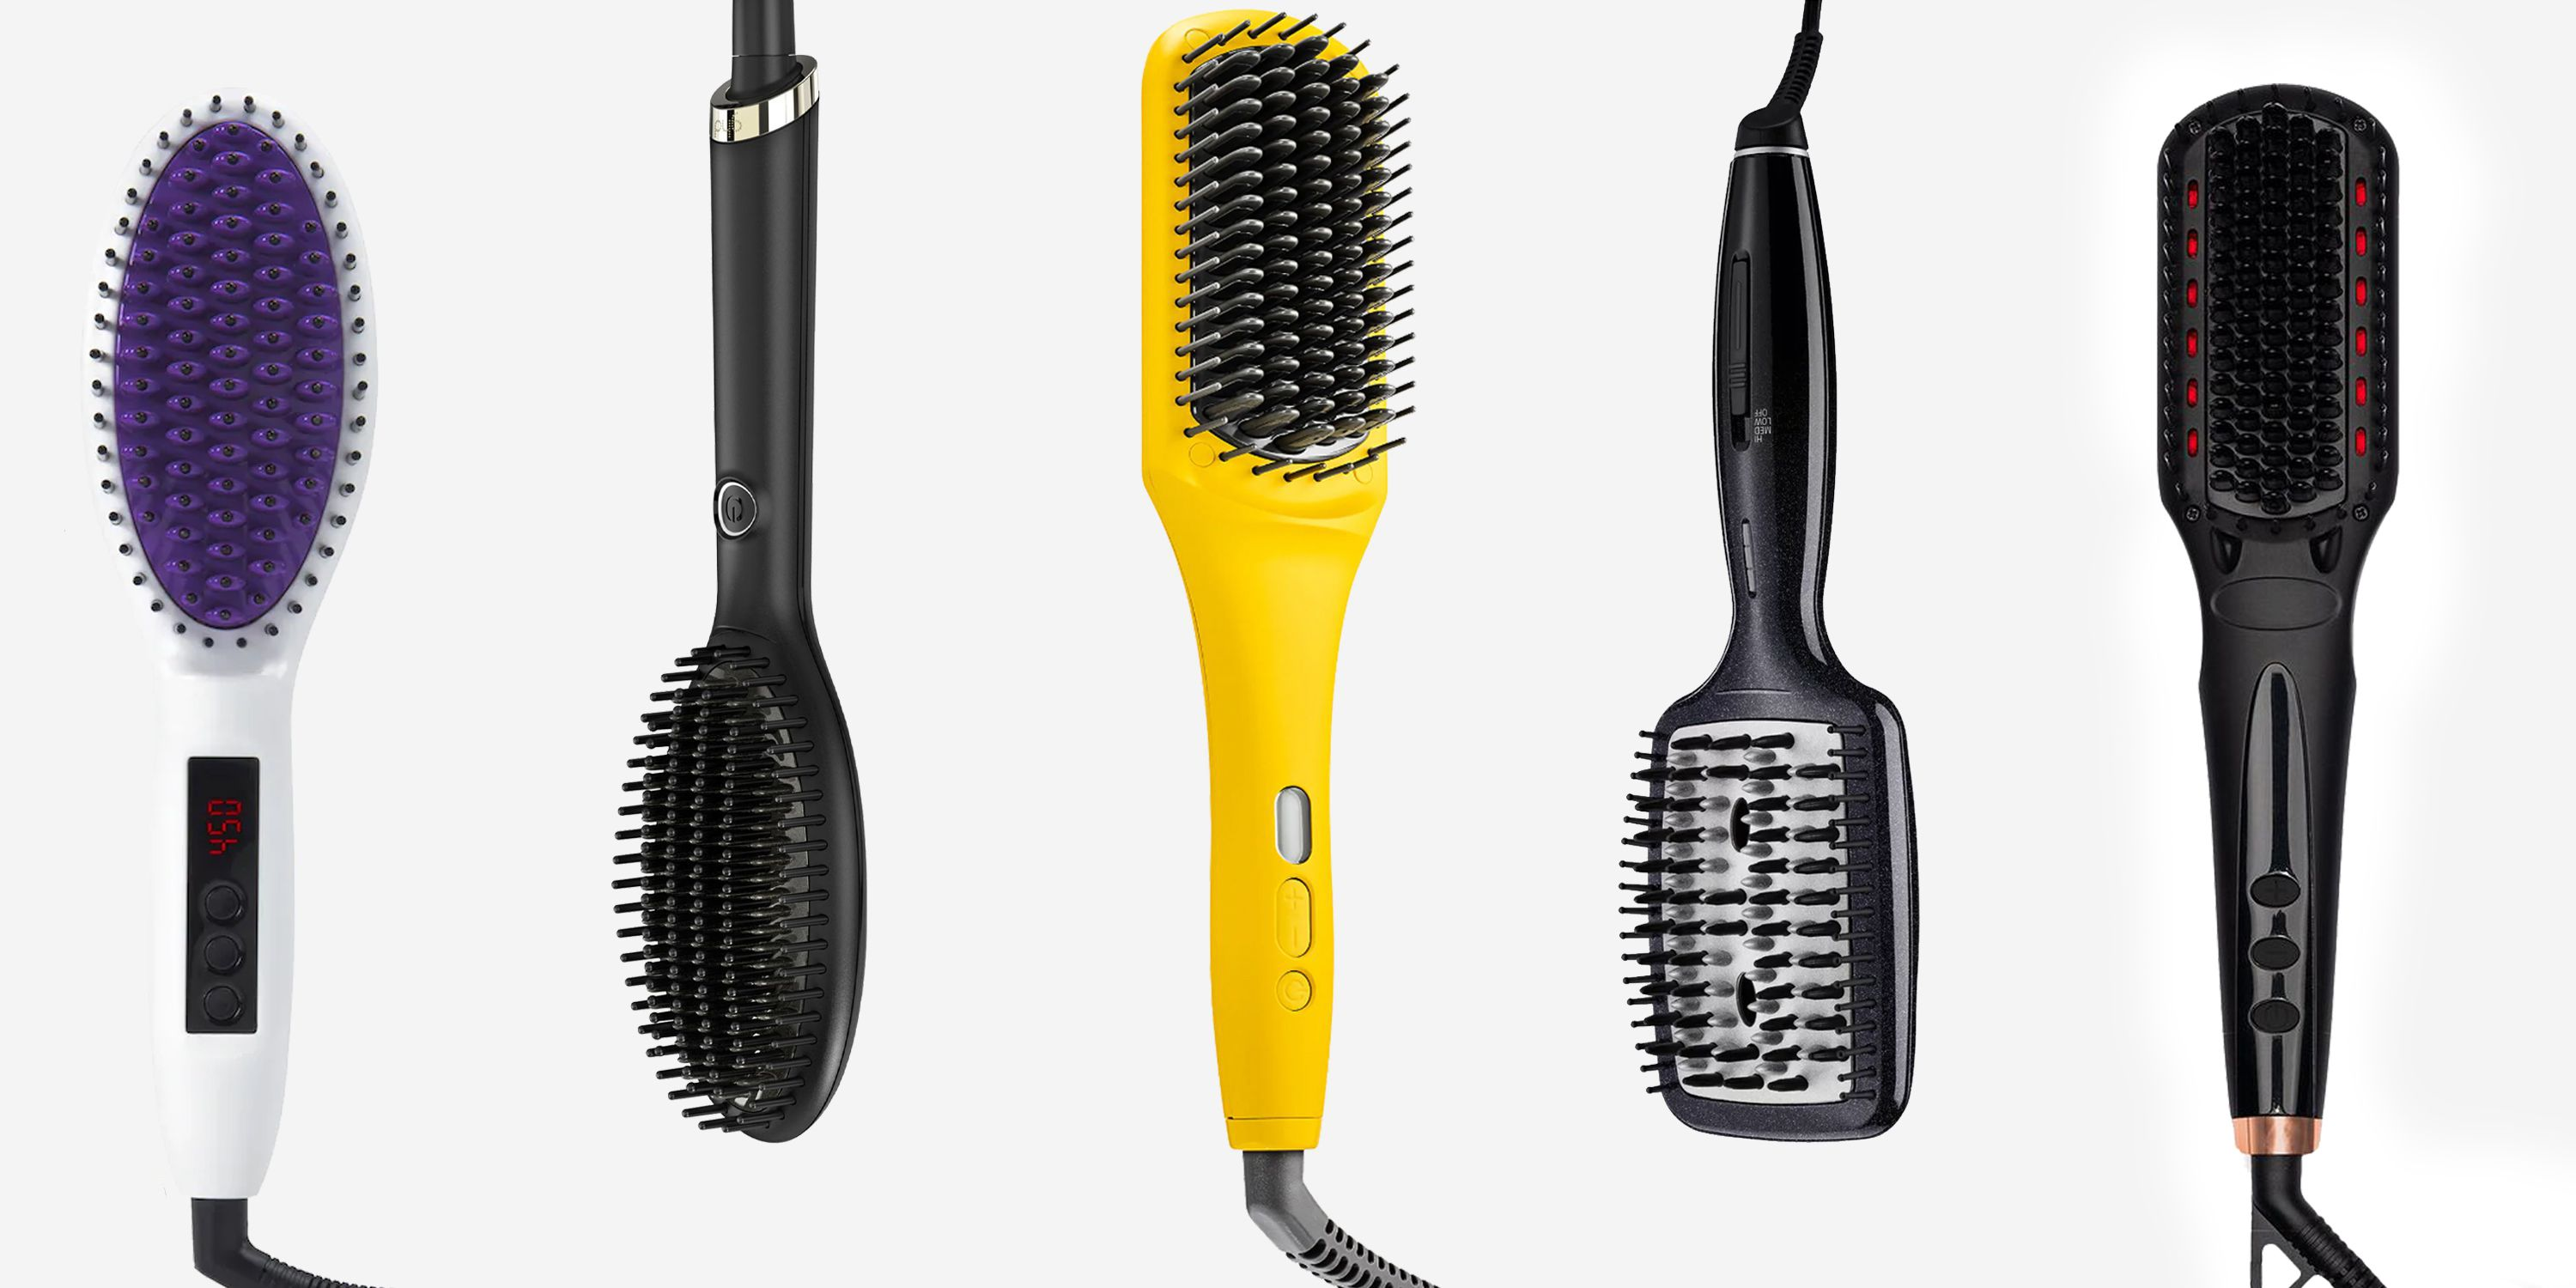 Round Ceramic Brush by Drybar #14